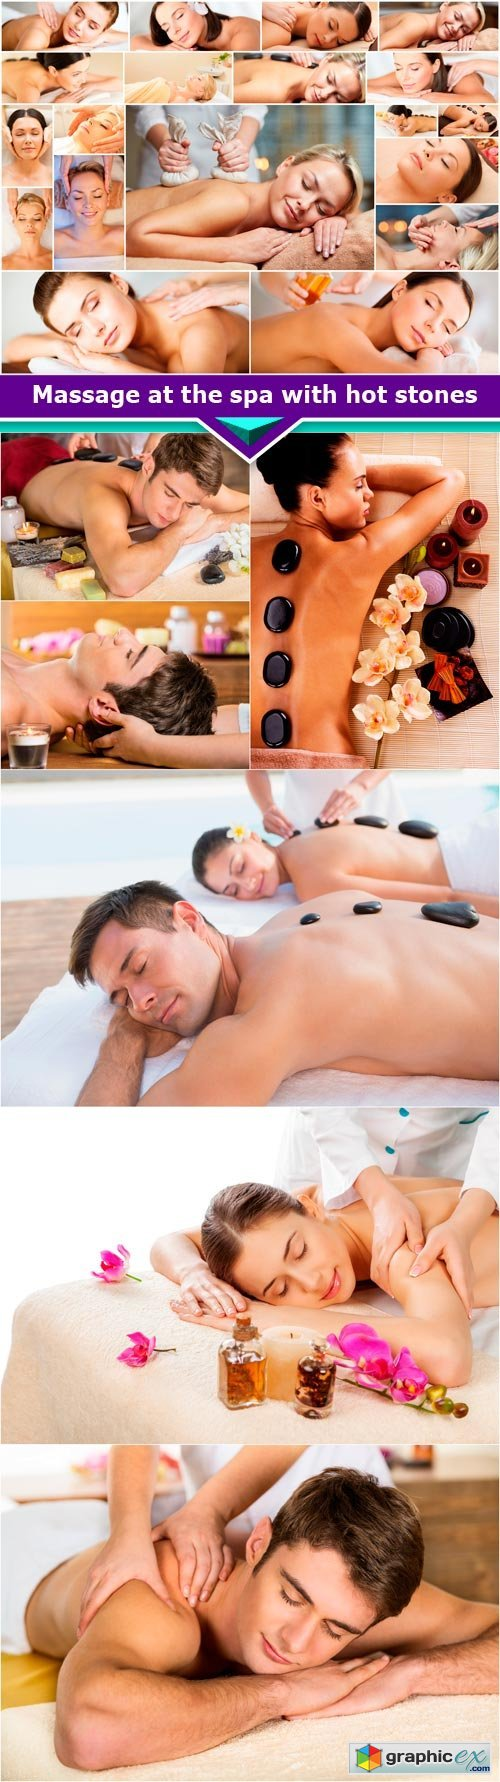 Massage at the spa with hot stones 7x JPEG